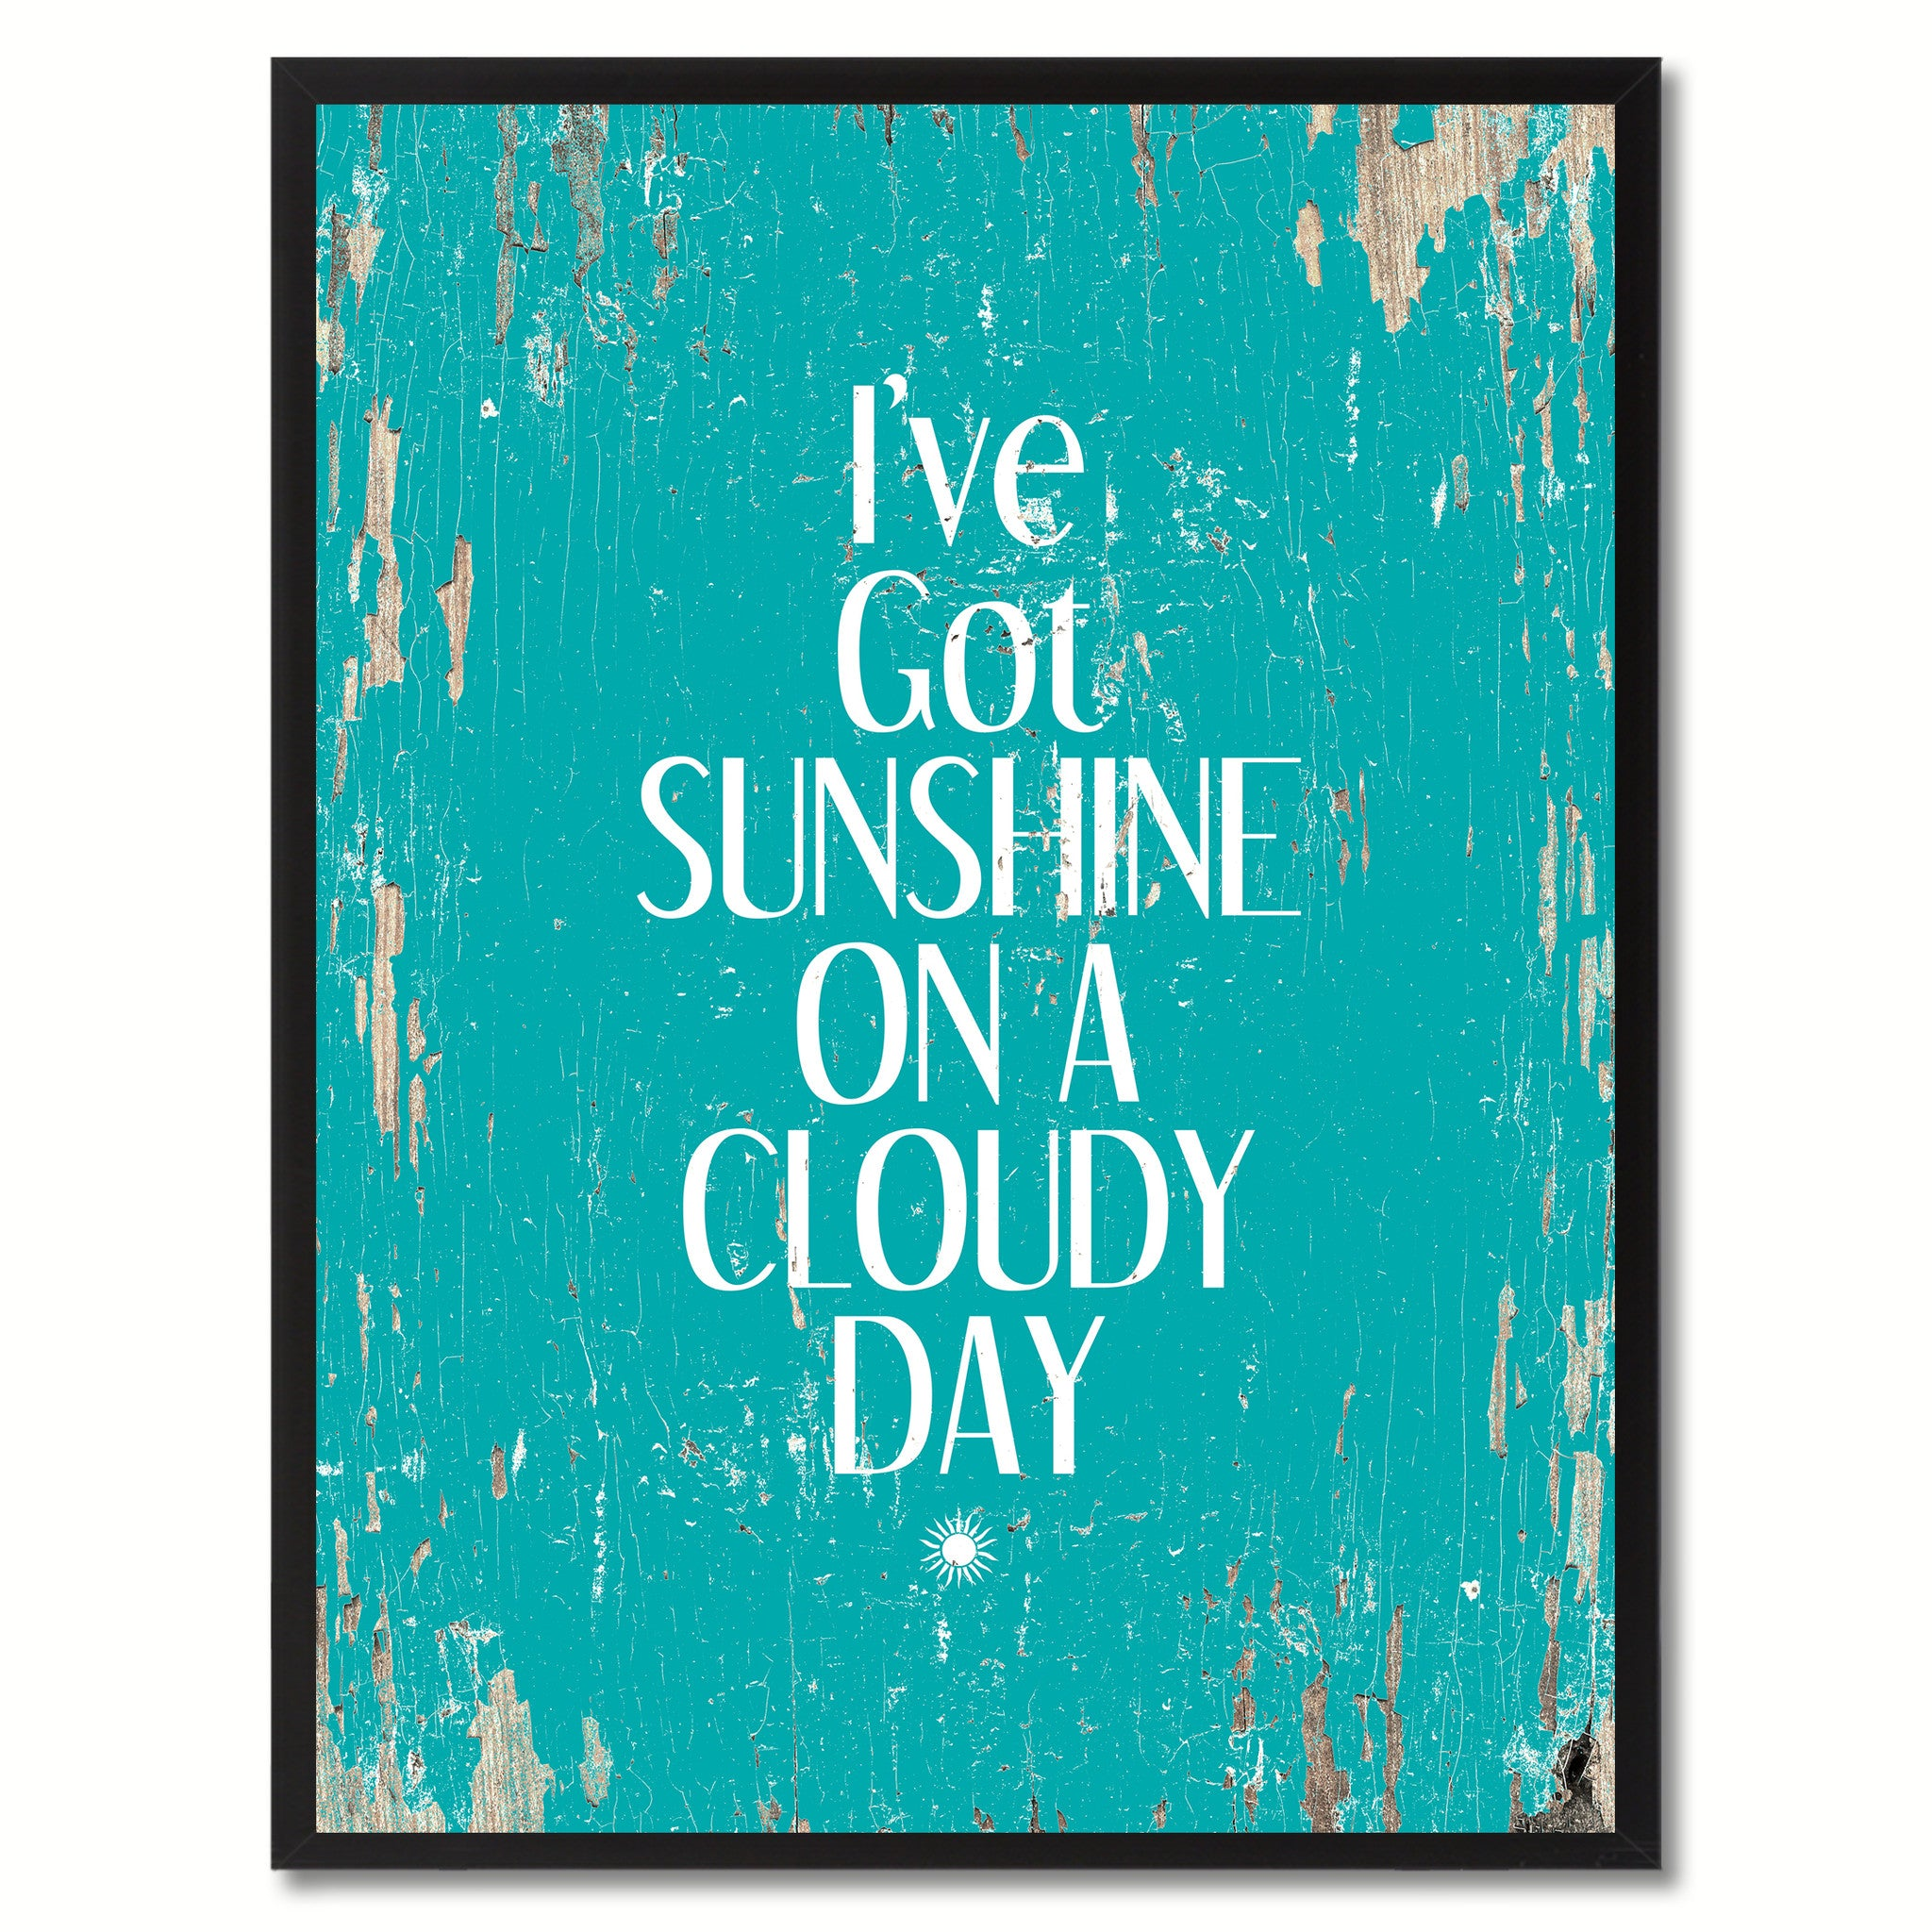 I've Got Sunshine On A Cloudy Day Saying Canvas Print, Black Picture Frame Home Decor Wall Art Gifts